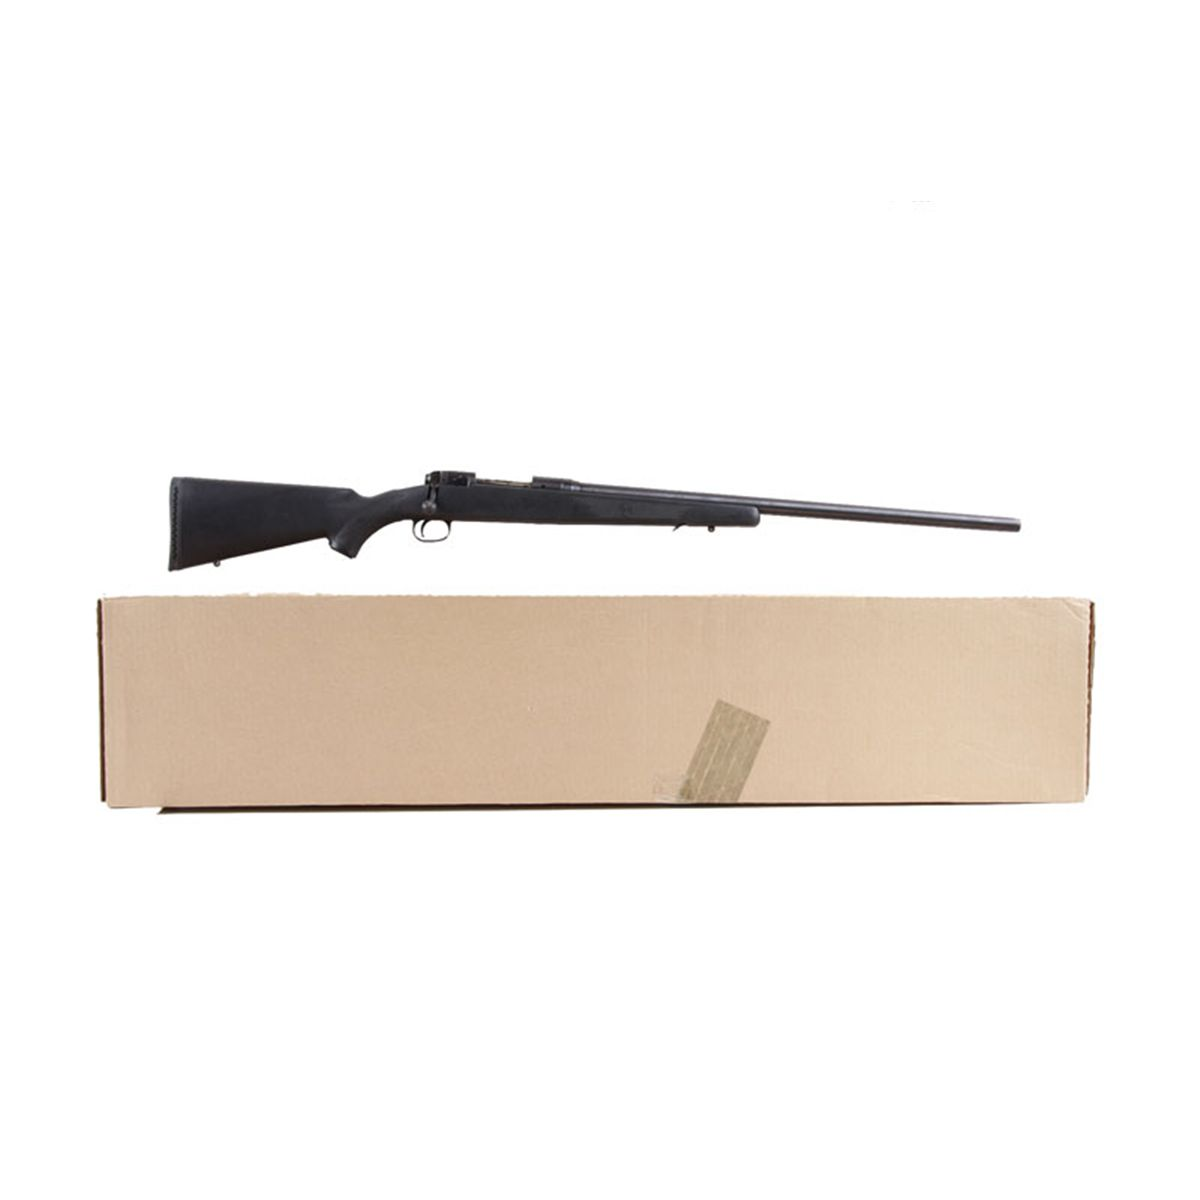 Savage Mdl 12FV Cal  22-250 Rem SN:F943983 Bolt action internal